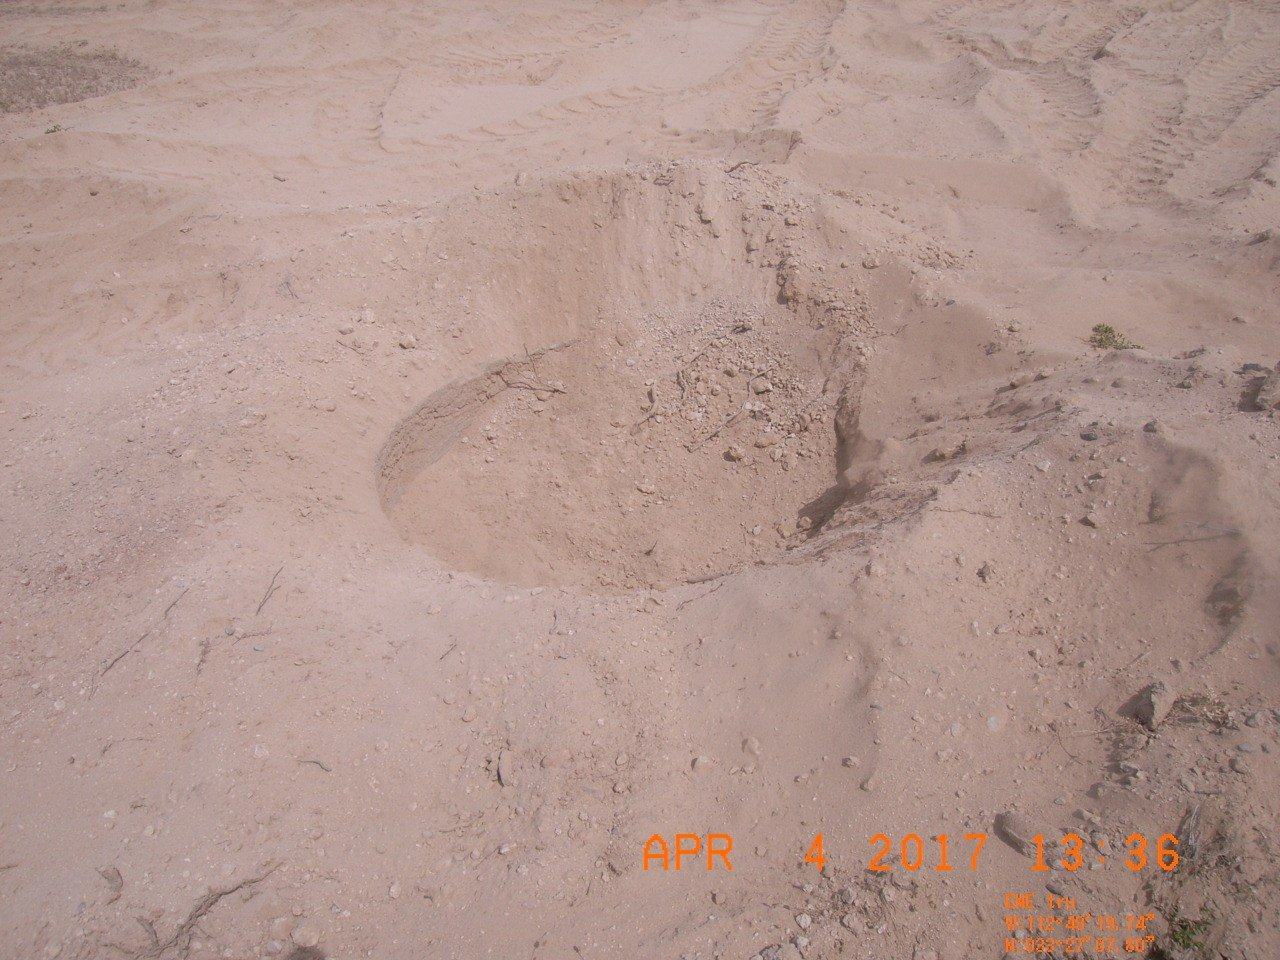 Crews fill in mysterious hole in Tonopah (Source: BLM)